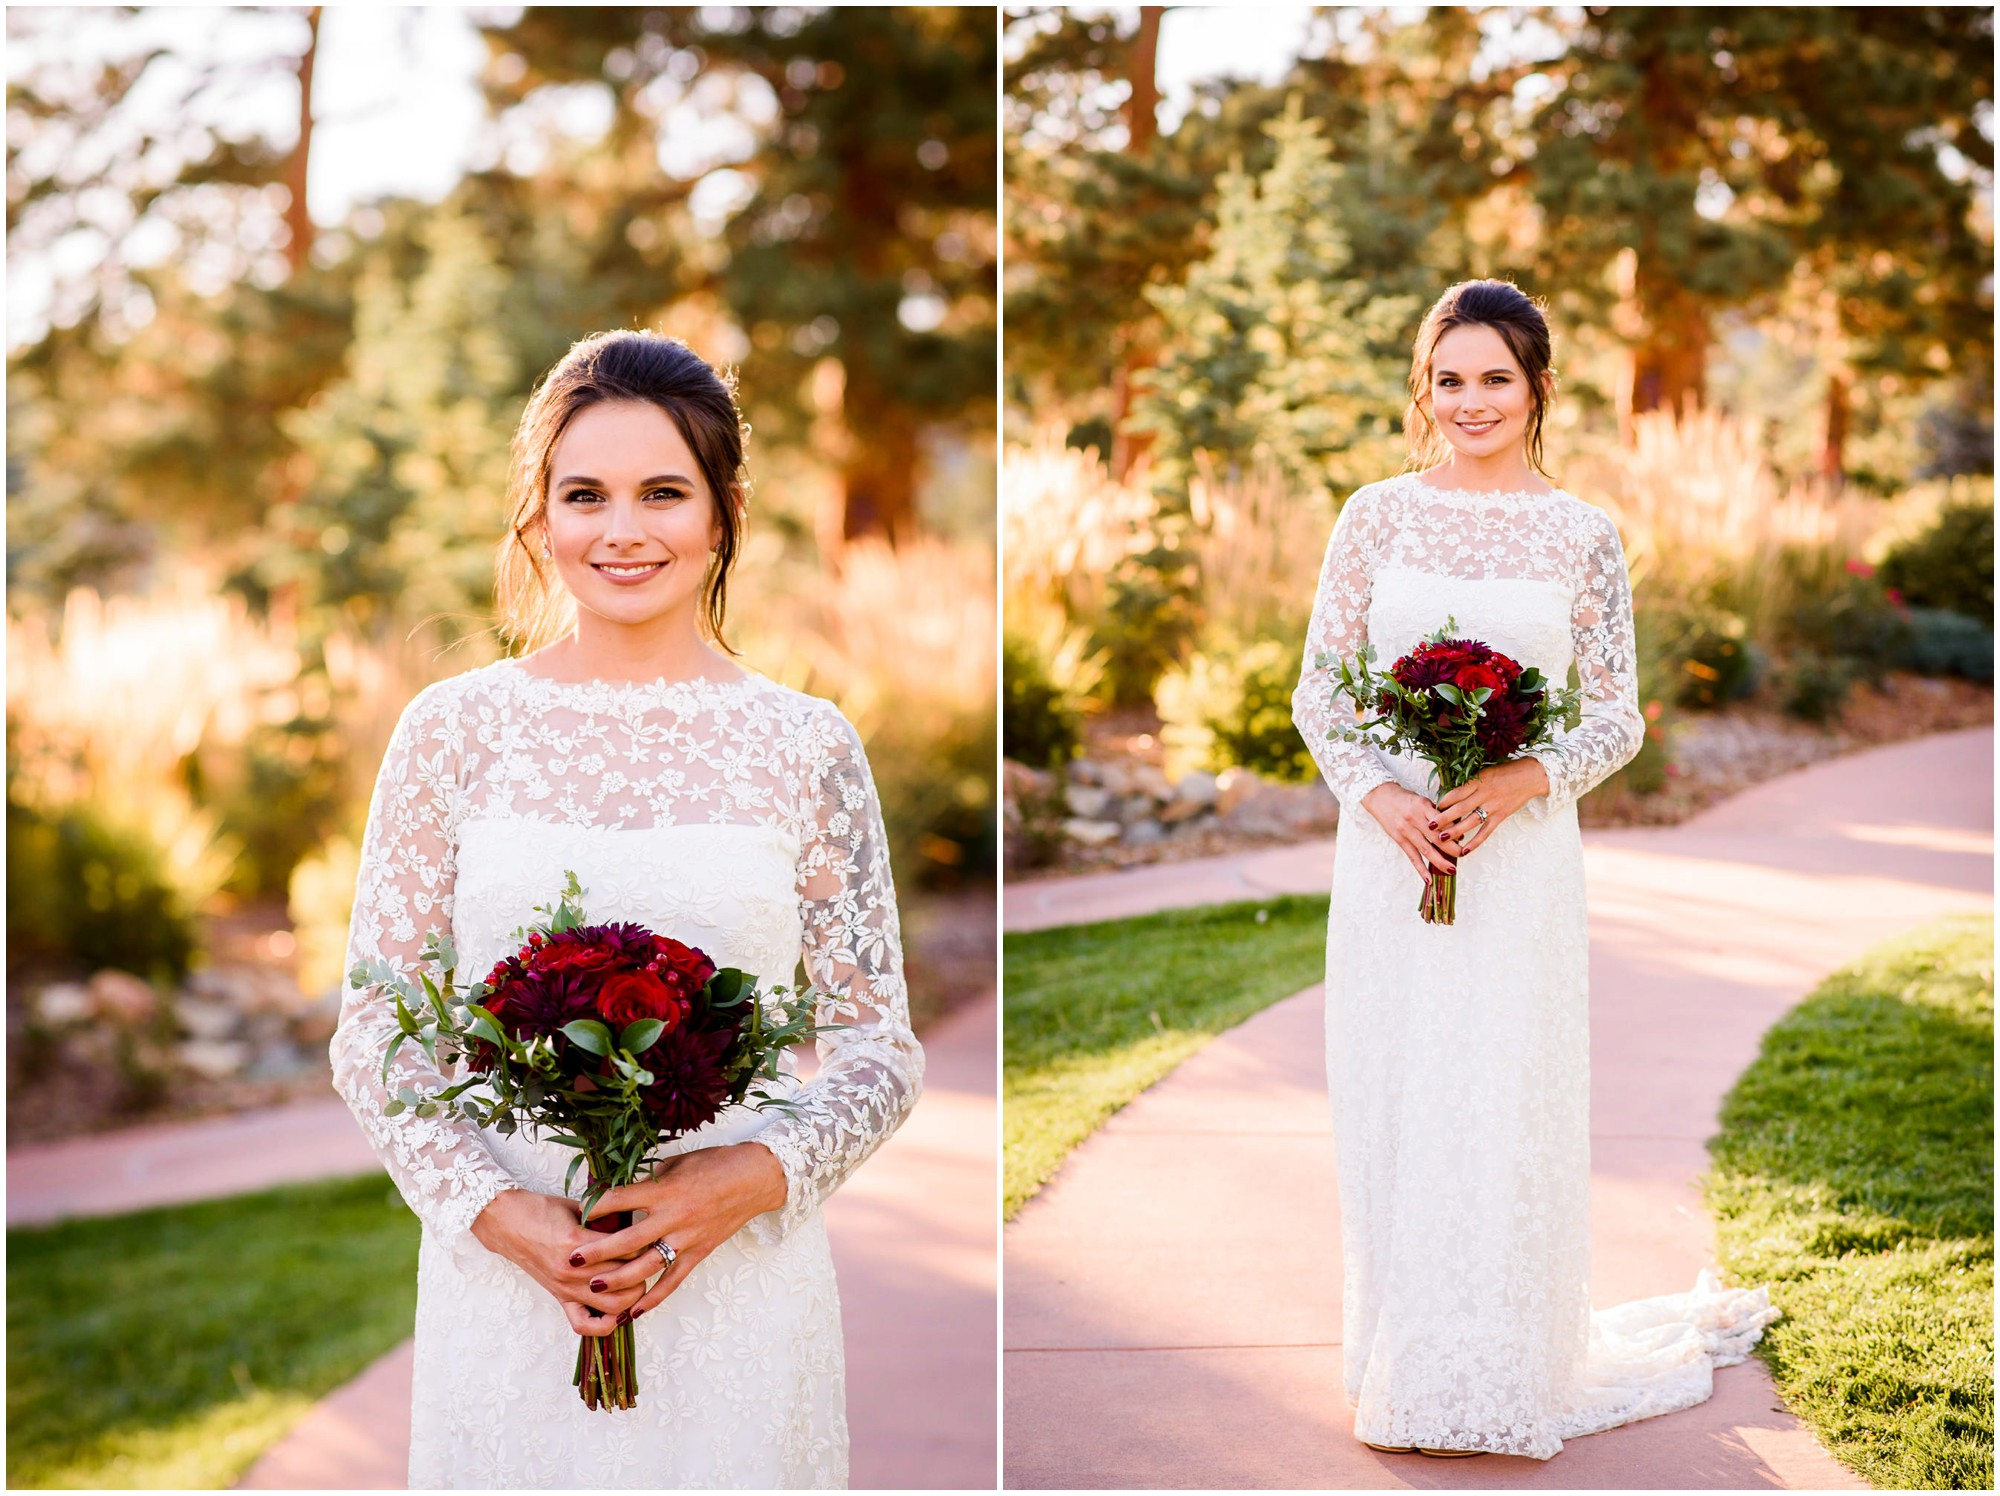 Bride photo at The Stanley Hotel